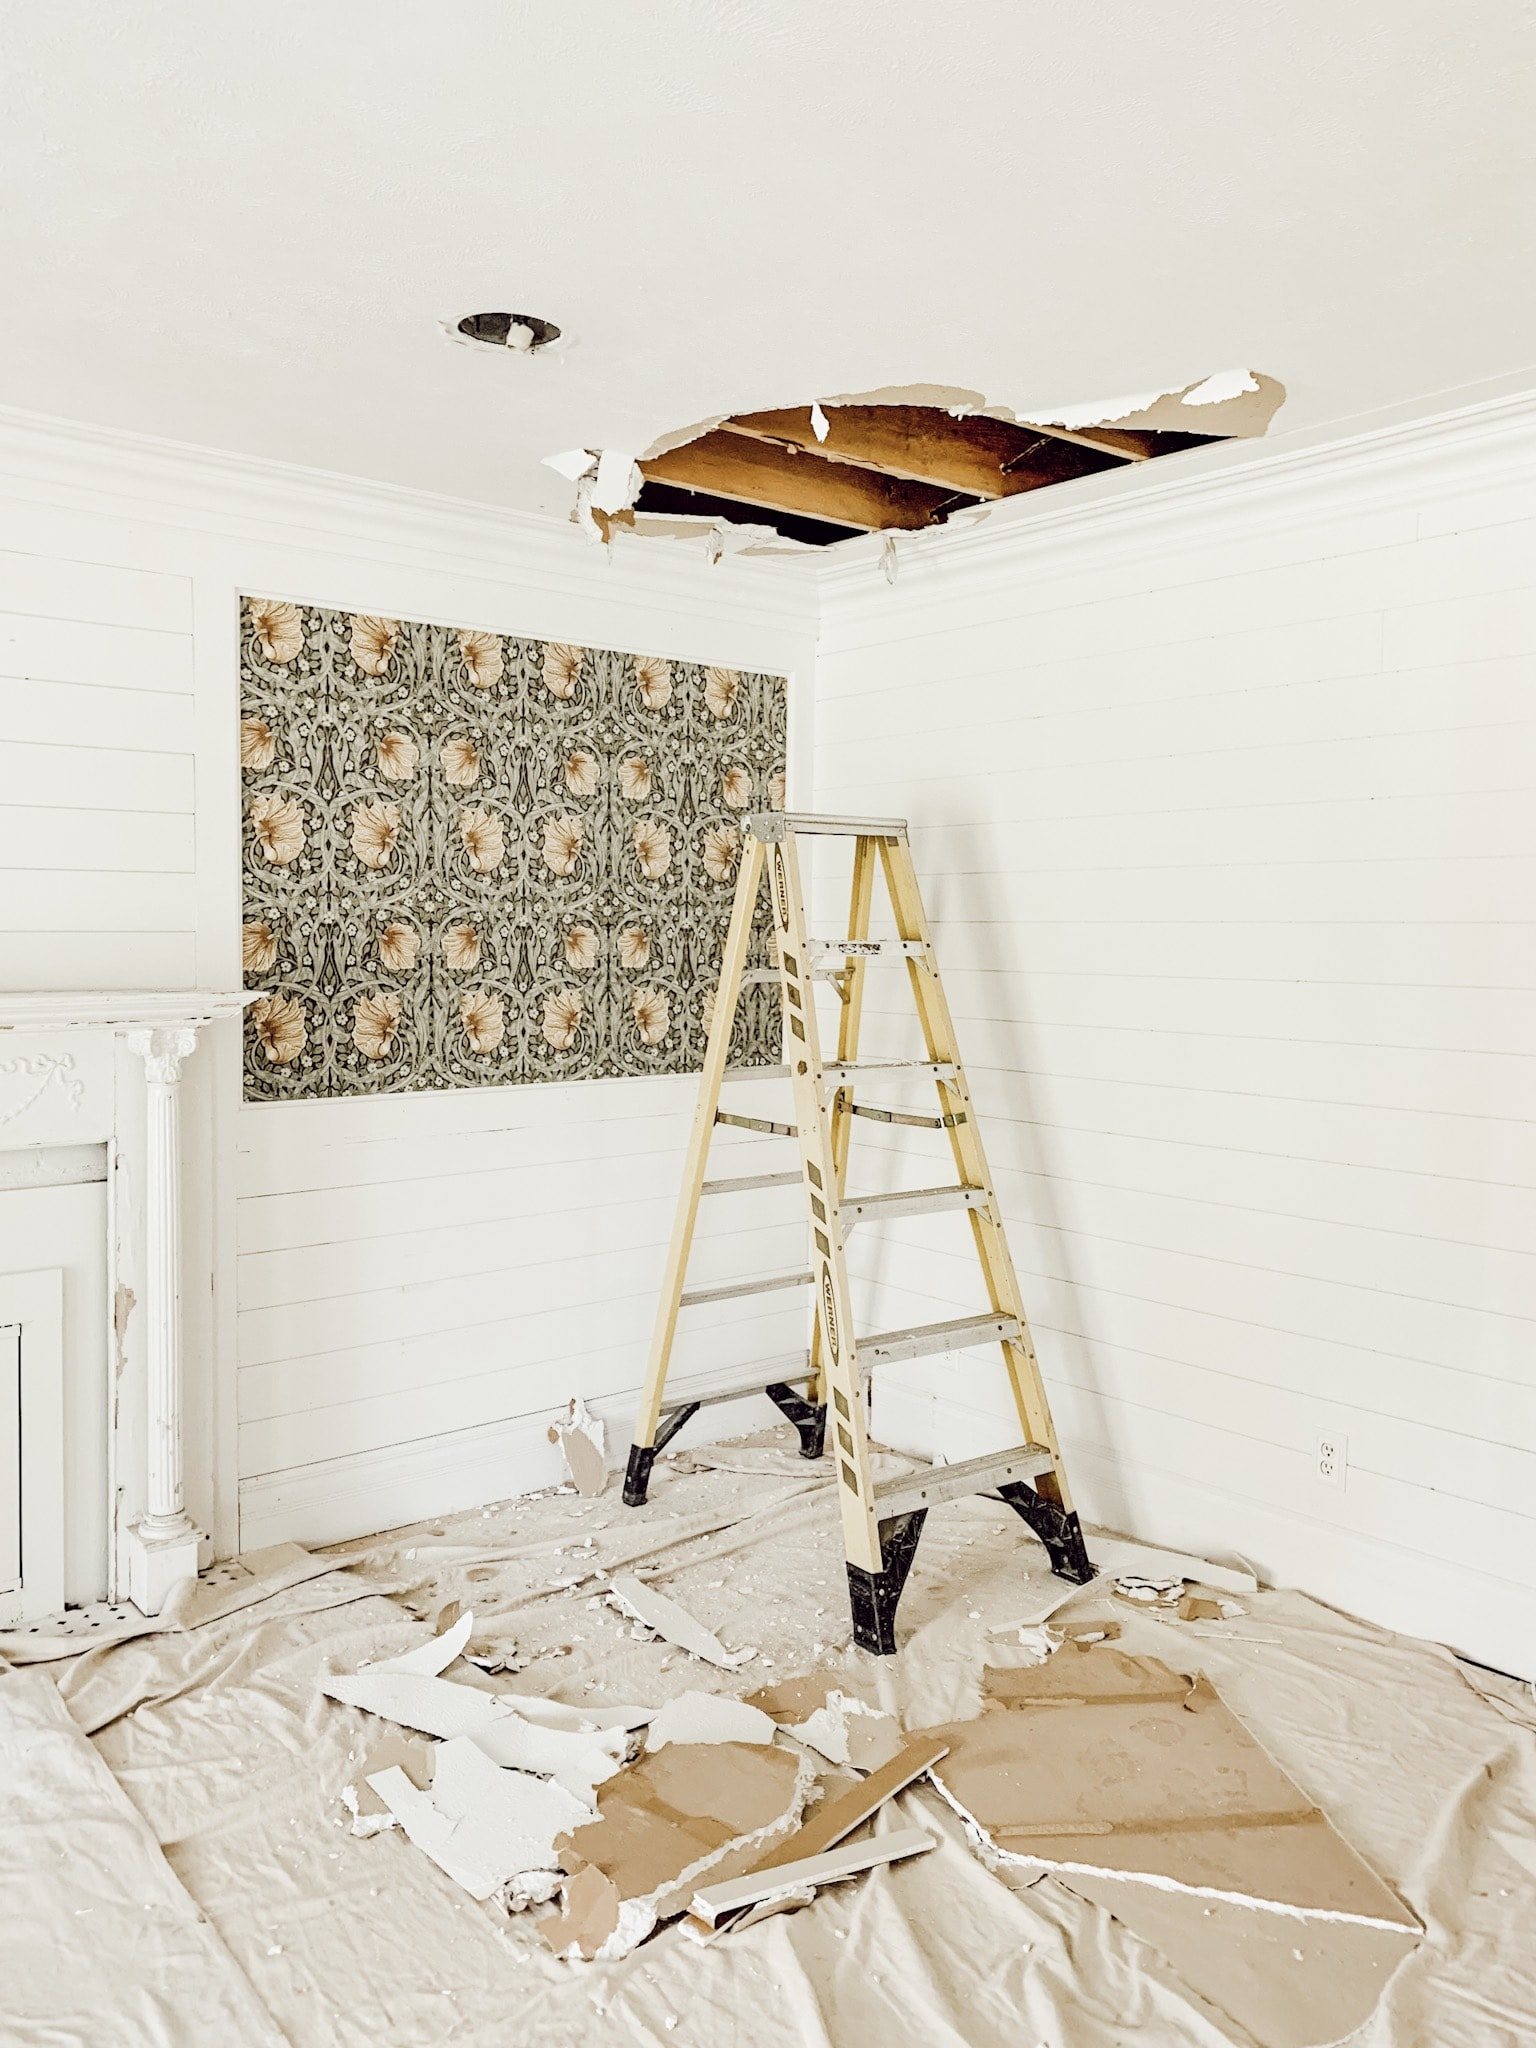 Why we tore out our ceilings